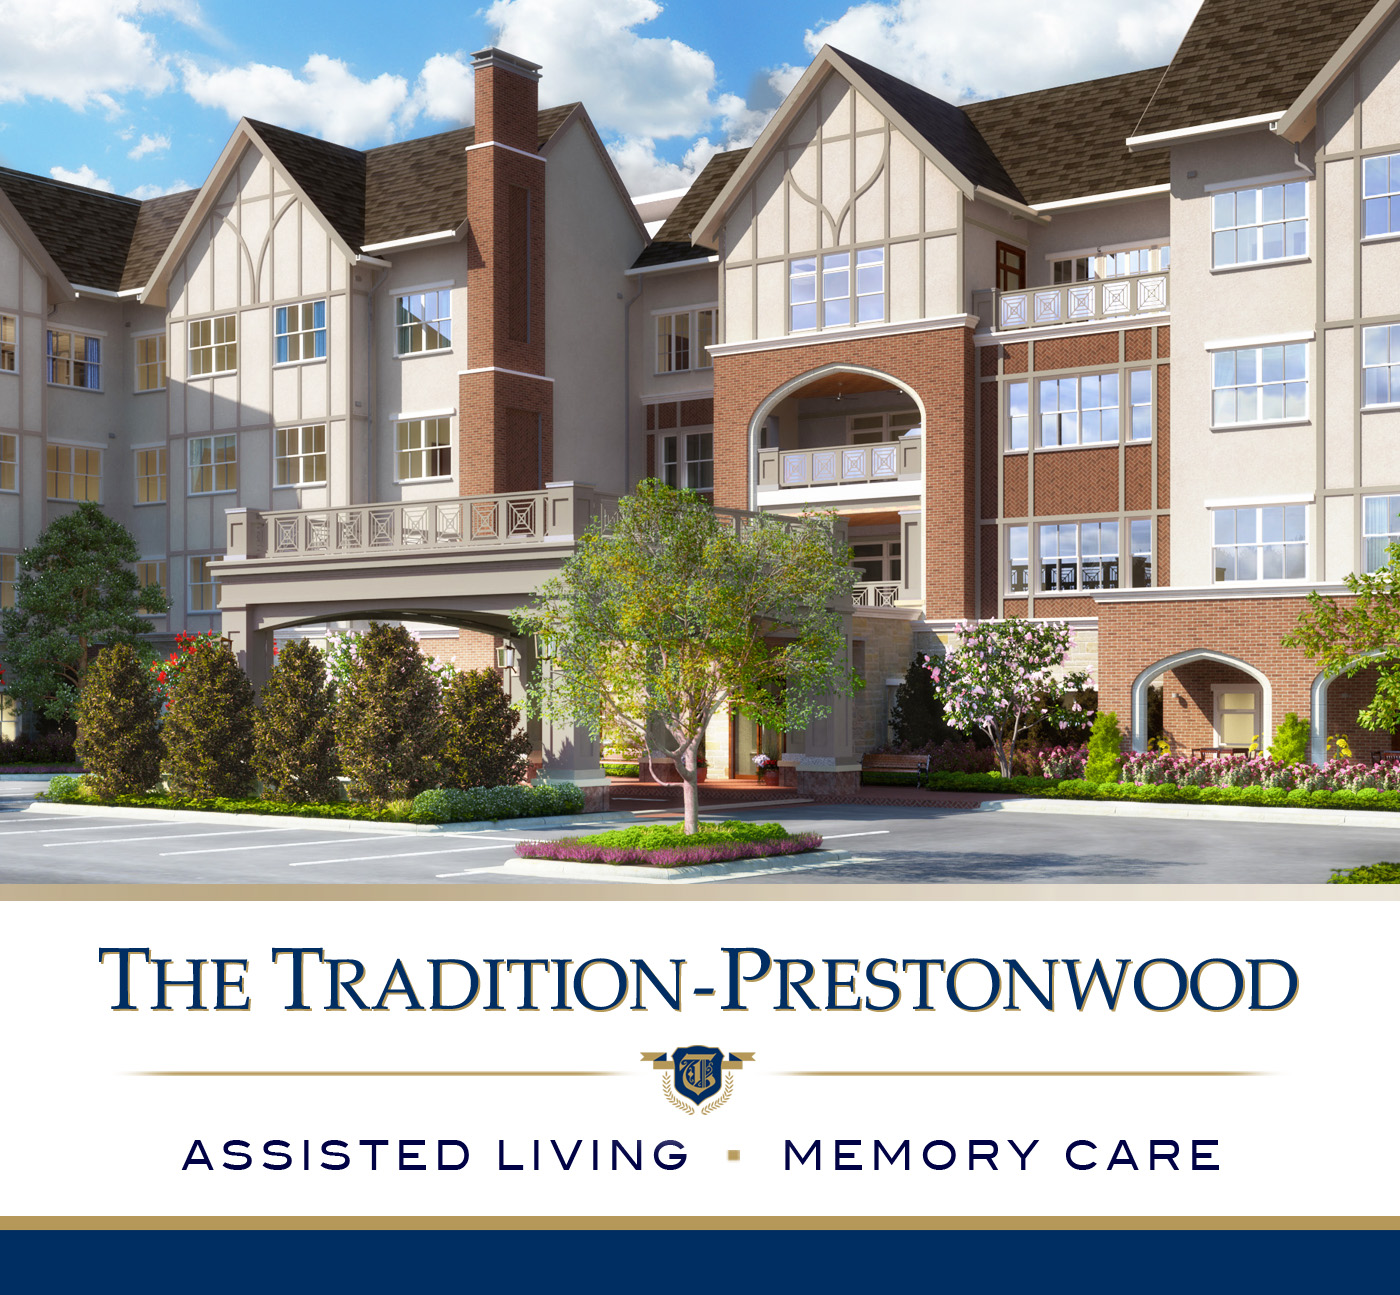 The Tradition-Prestonwood Assisted Living/Memory Care